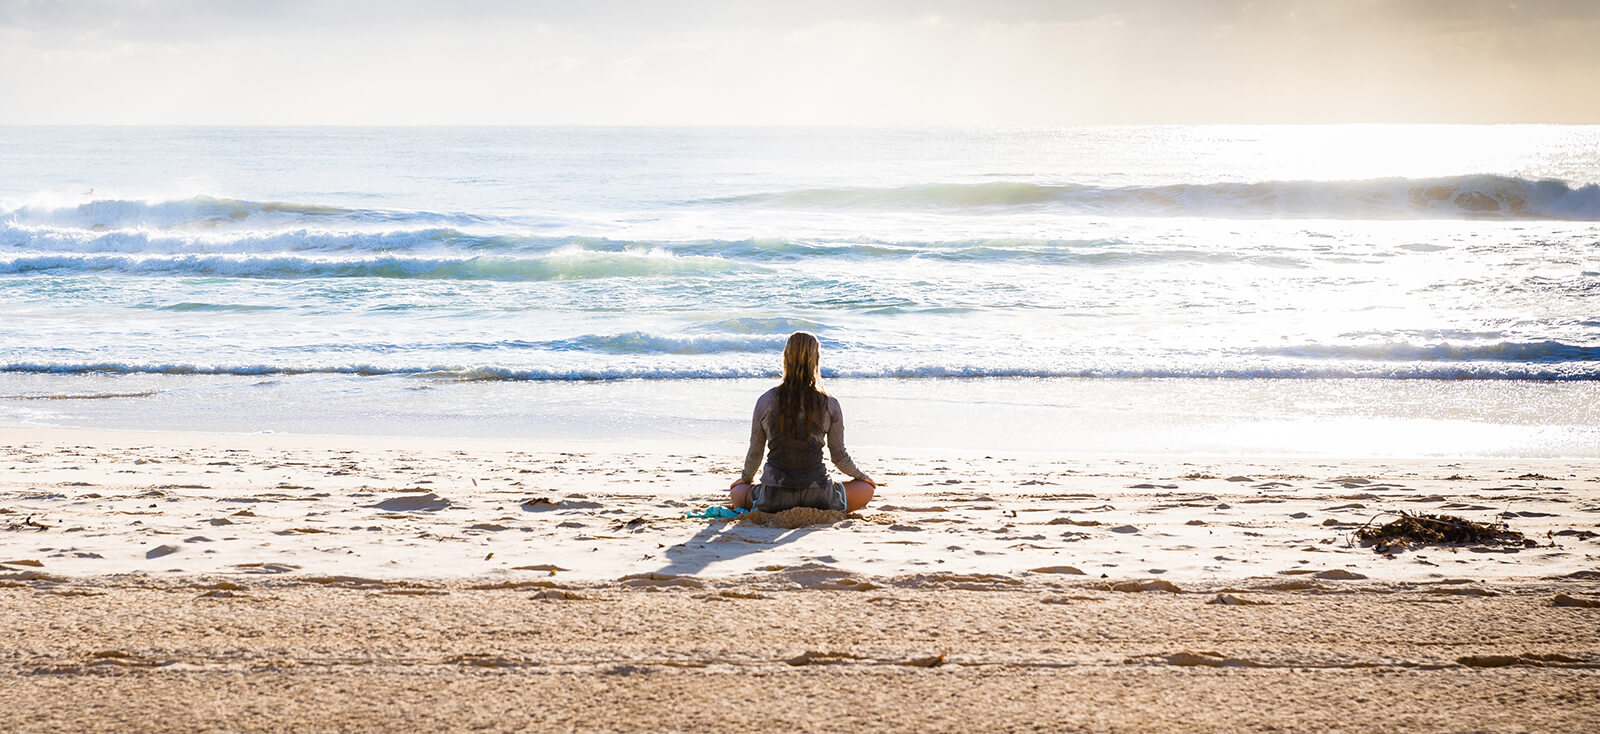 Woman meditating on a beach shore